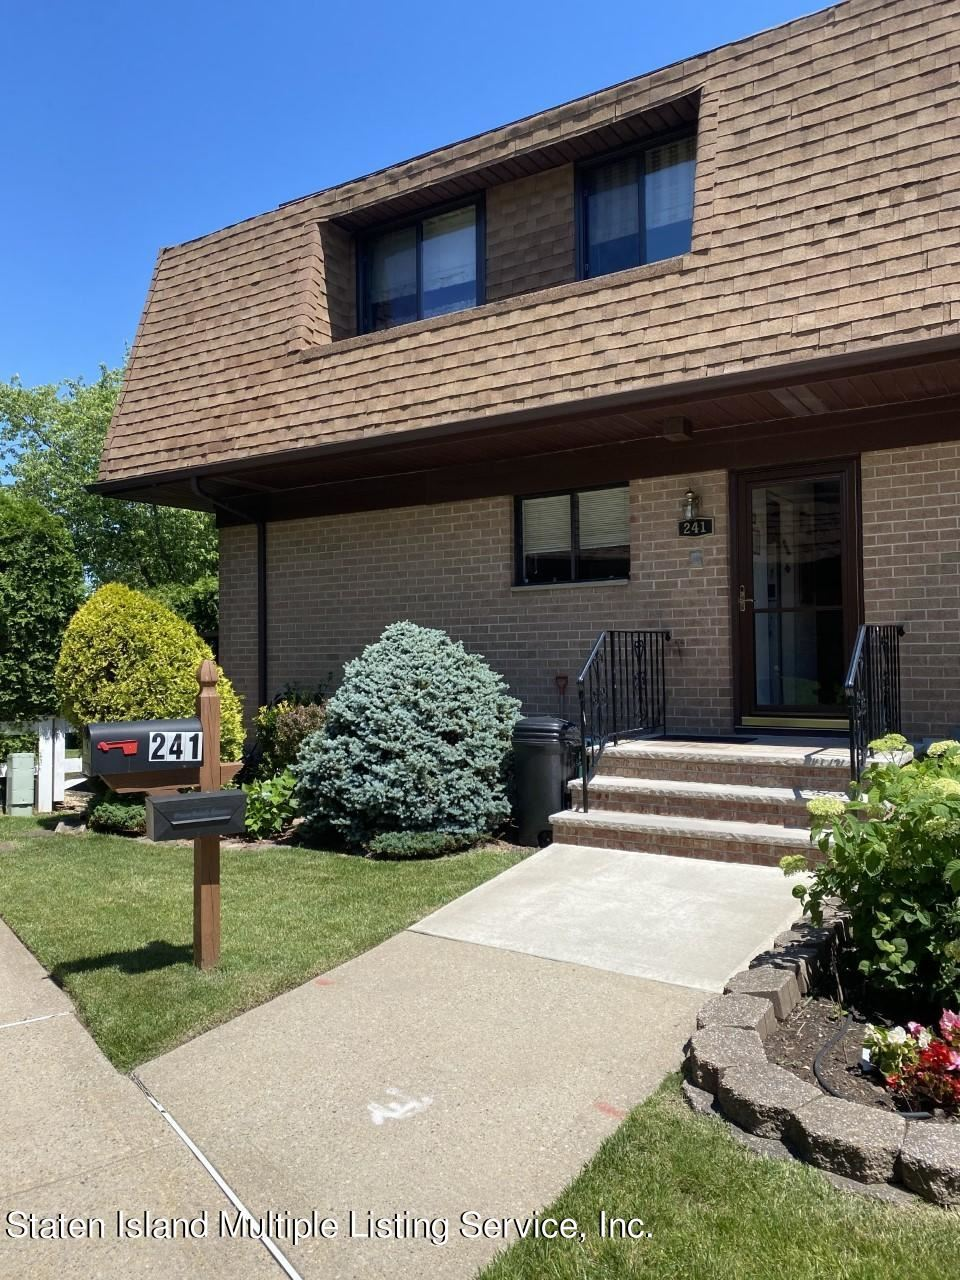 Photo for 241 Windham Loop, Staten Island, NY 10314 (MLS # 1147235)